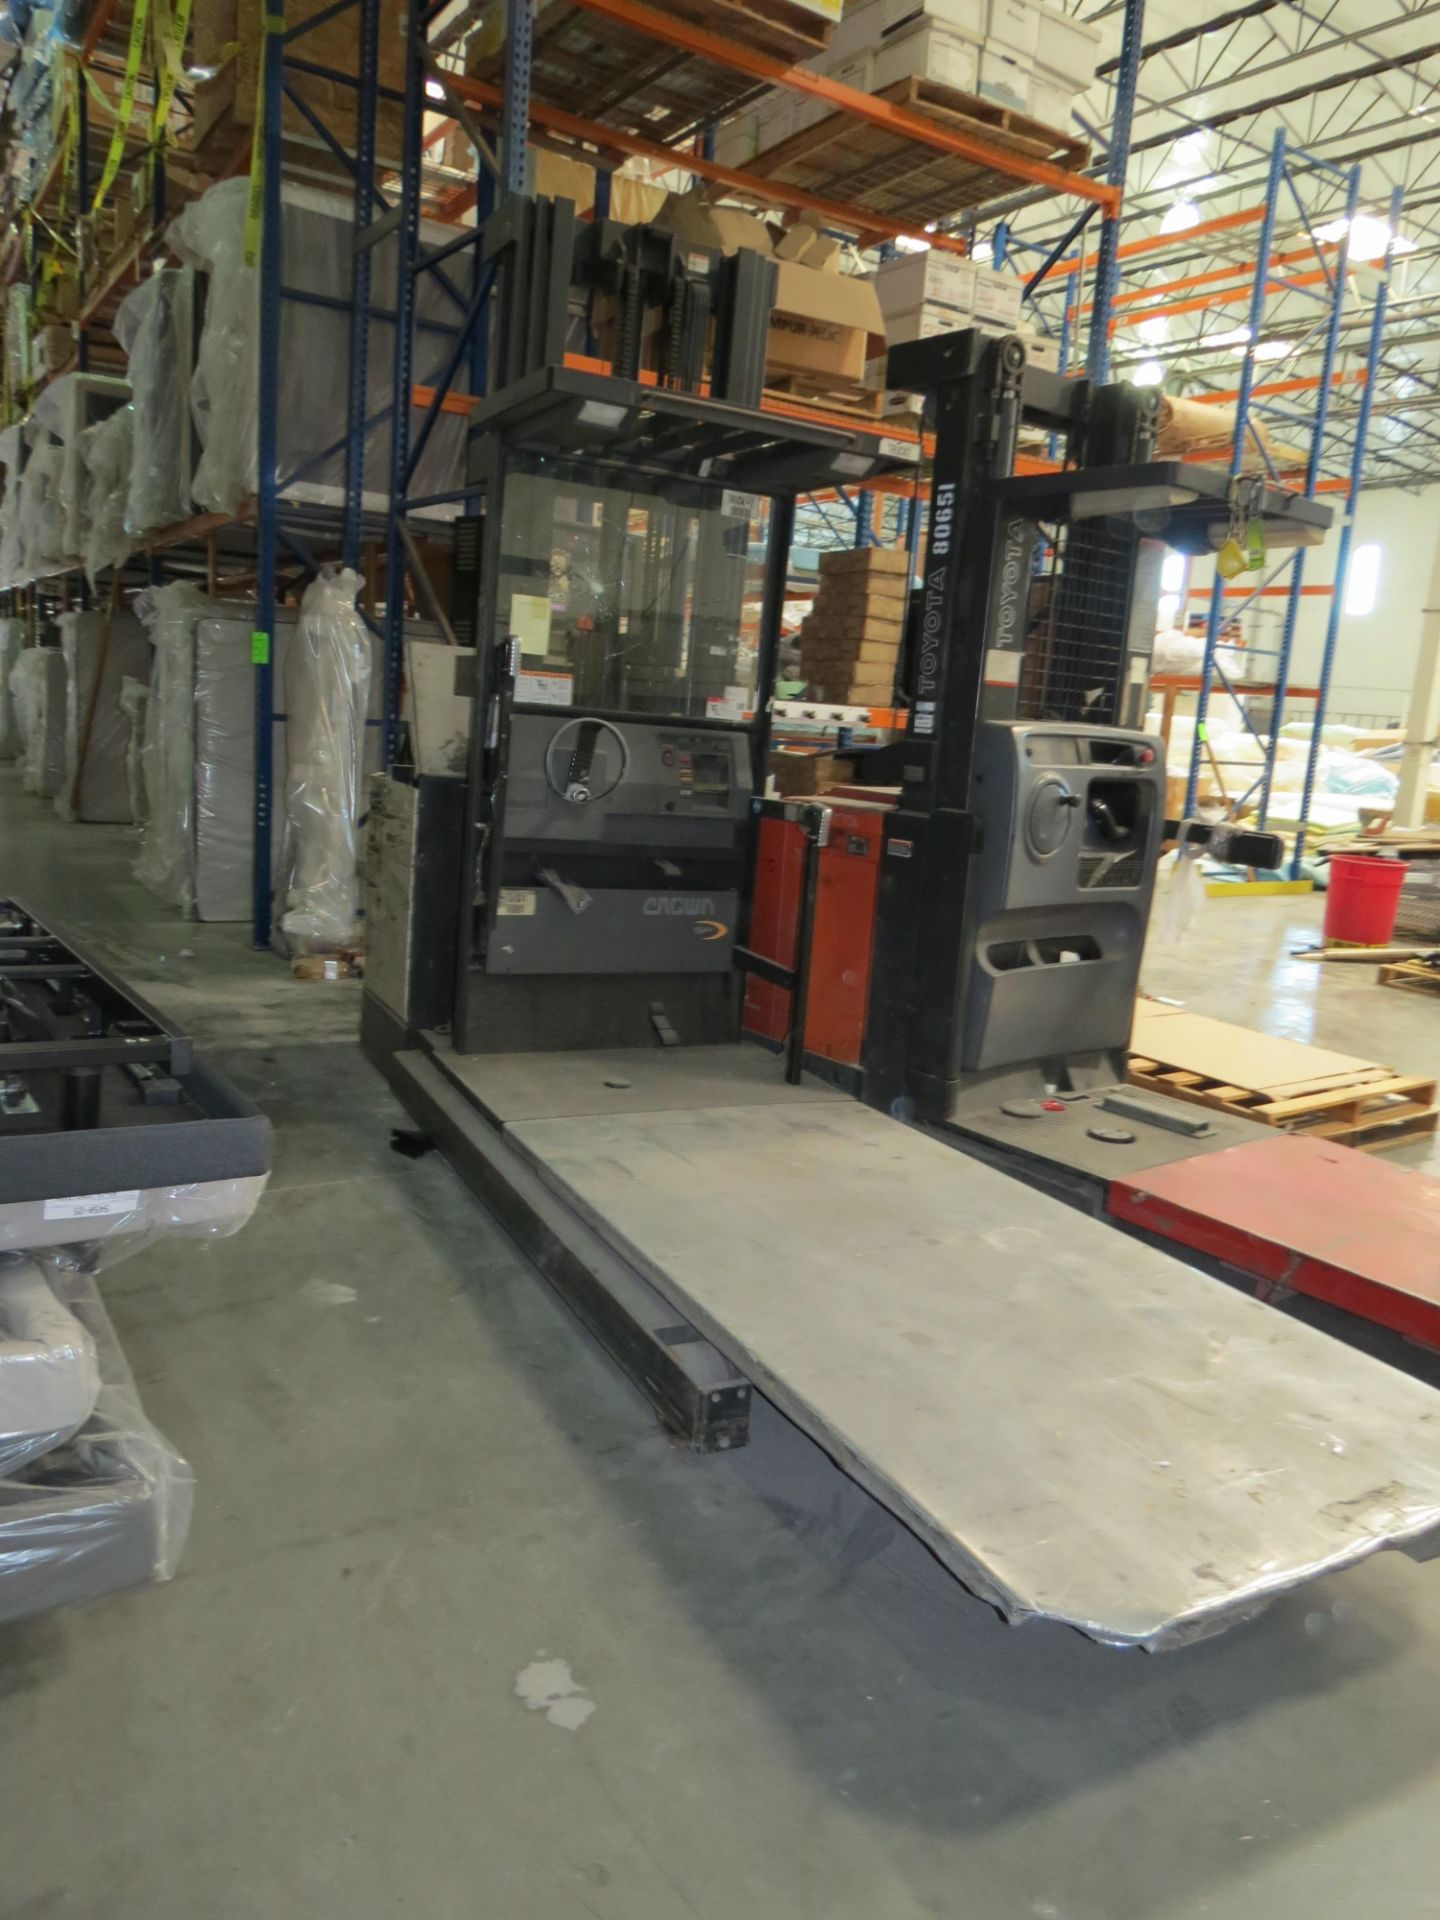 Crown SP 3-Stage Order Picker Electric Forklift 6860 Capacity ( Does Not Run, Needs New Battery)